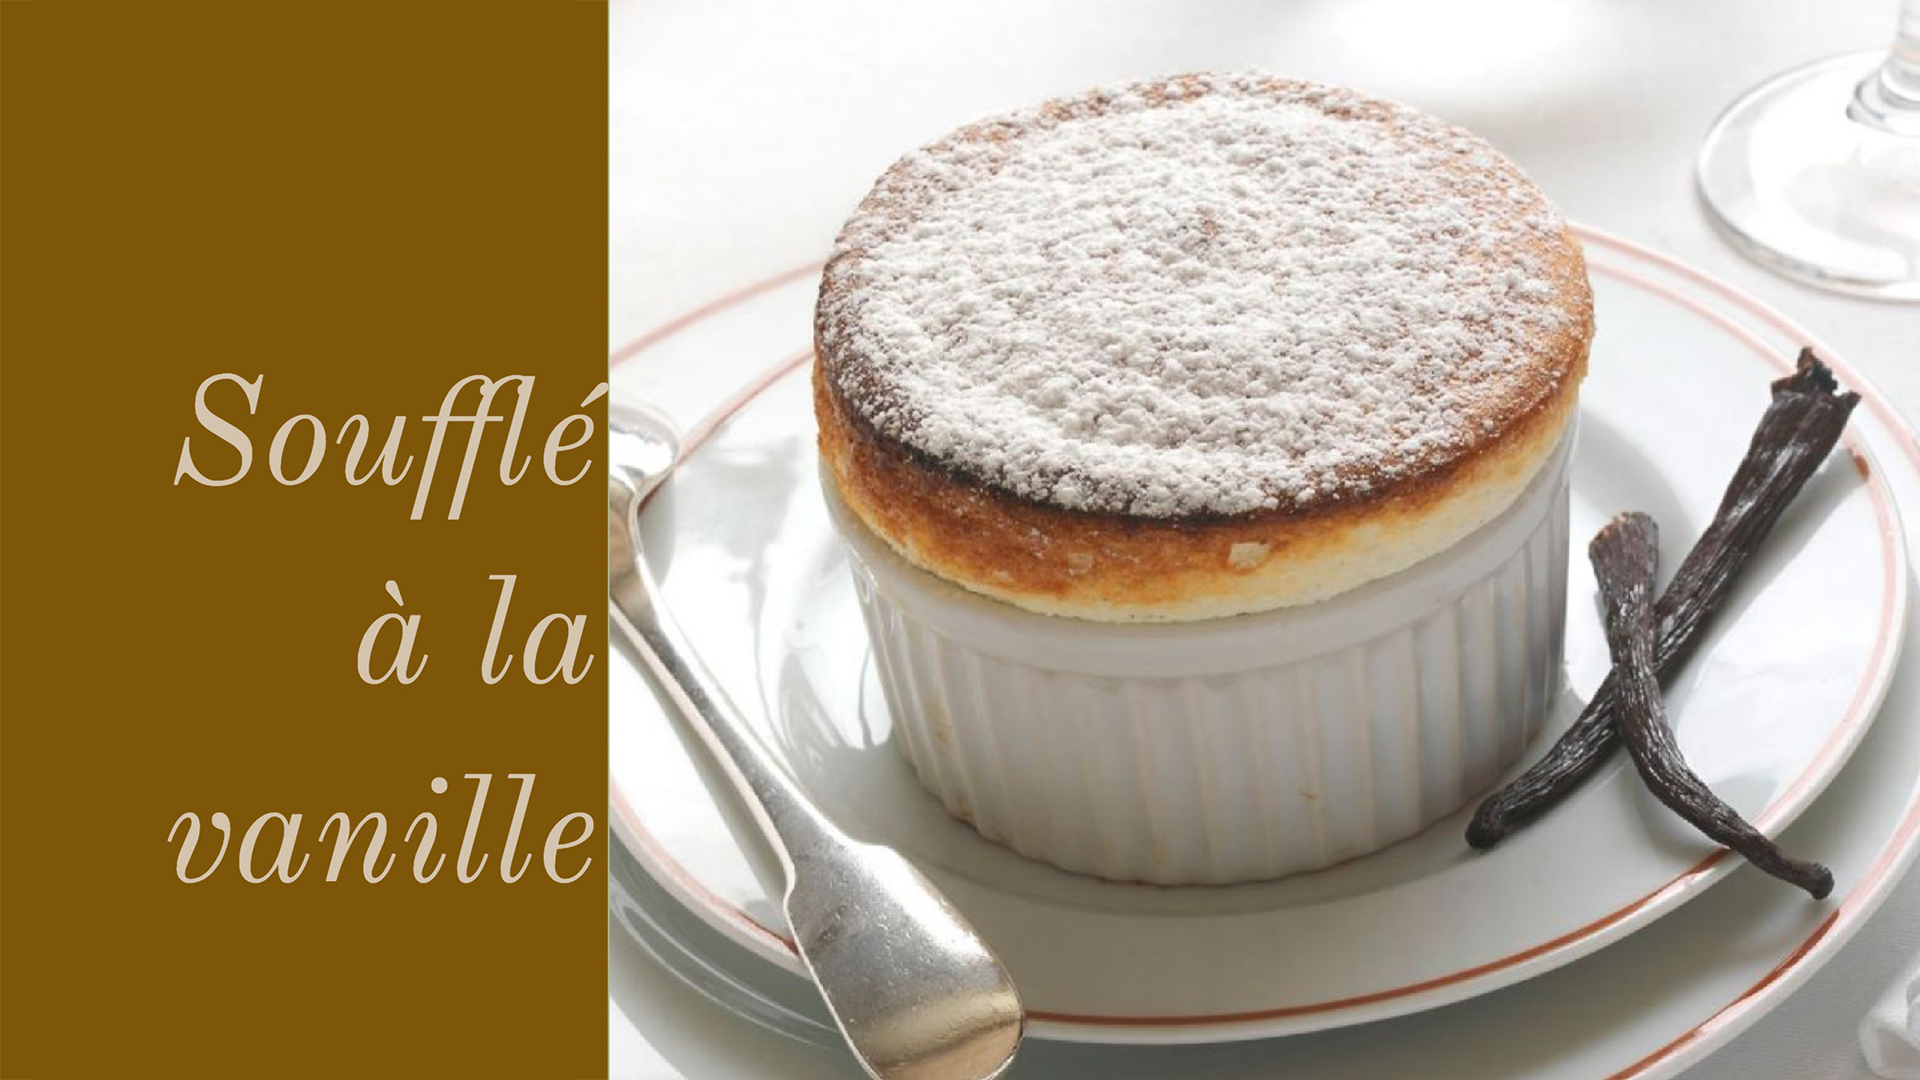 vanilla-souffle-recipe-from-our-pastry-chef